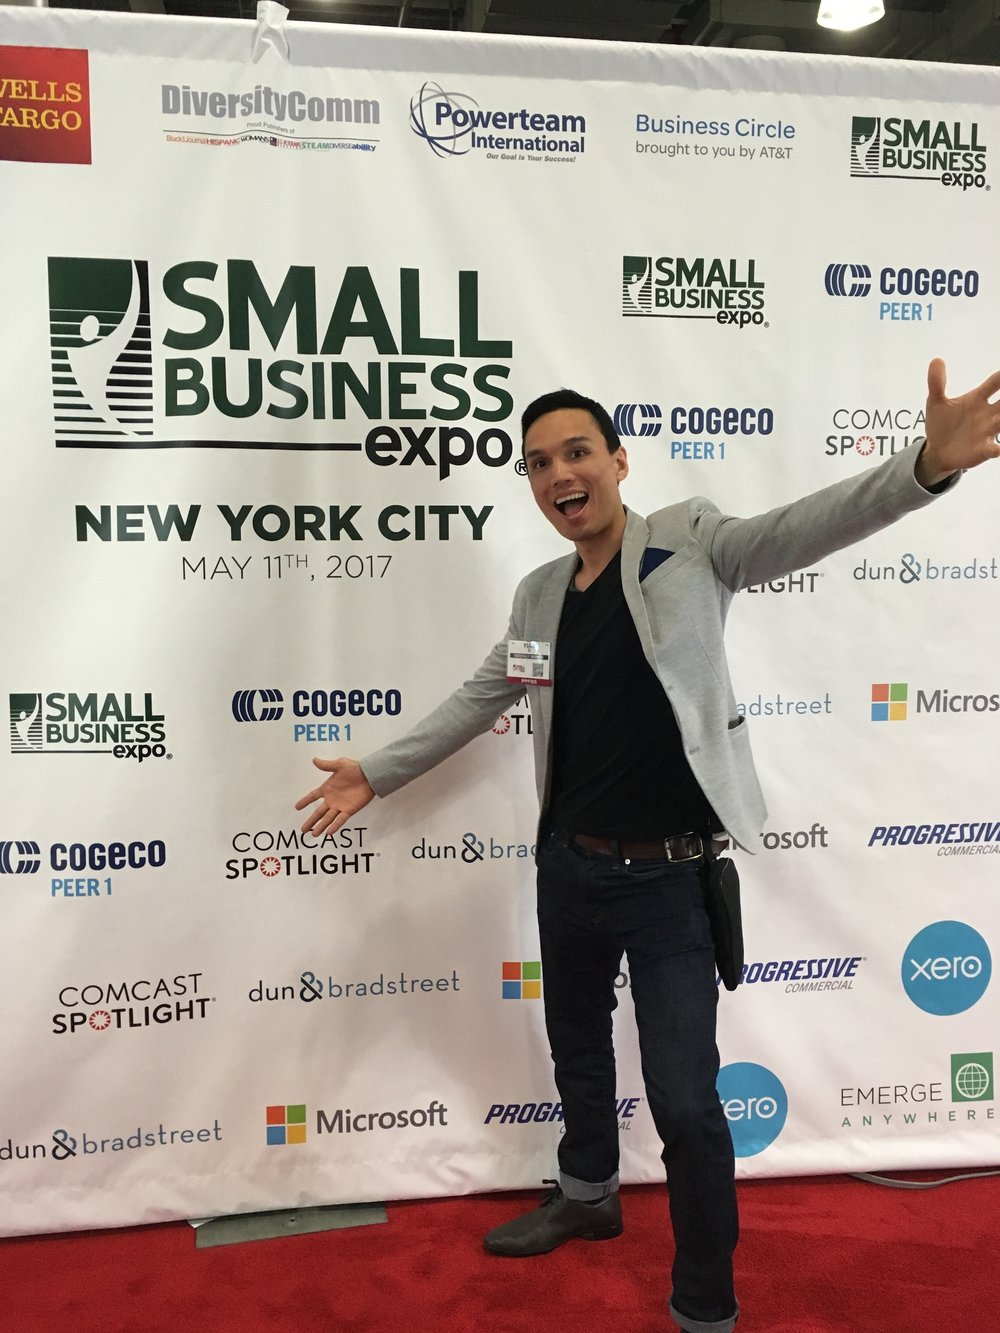 Small Business Expo at Jacob Javitz Center